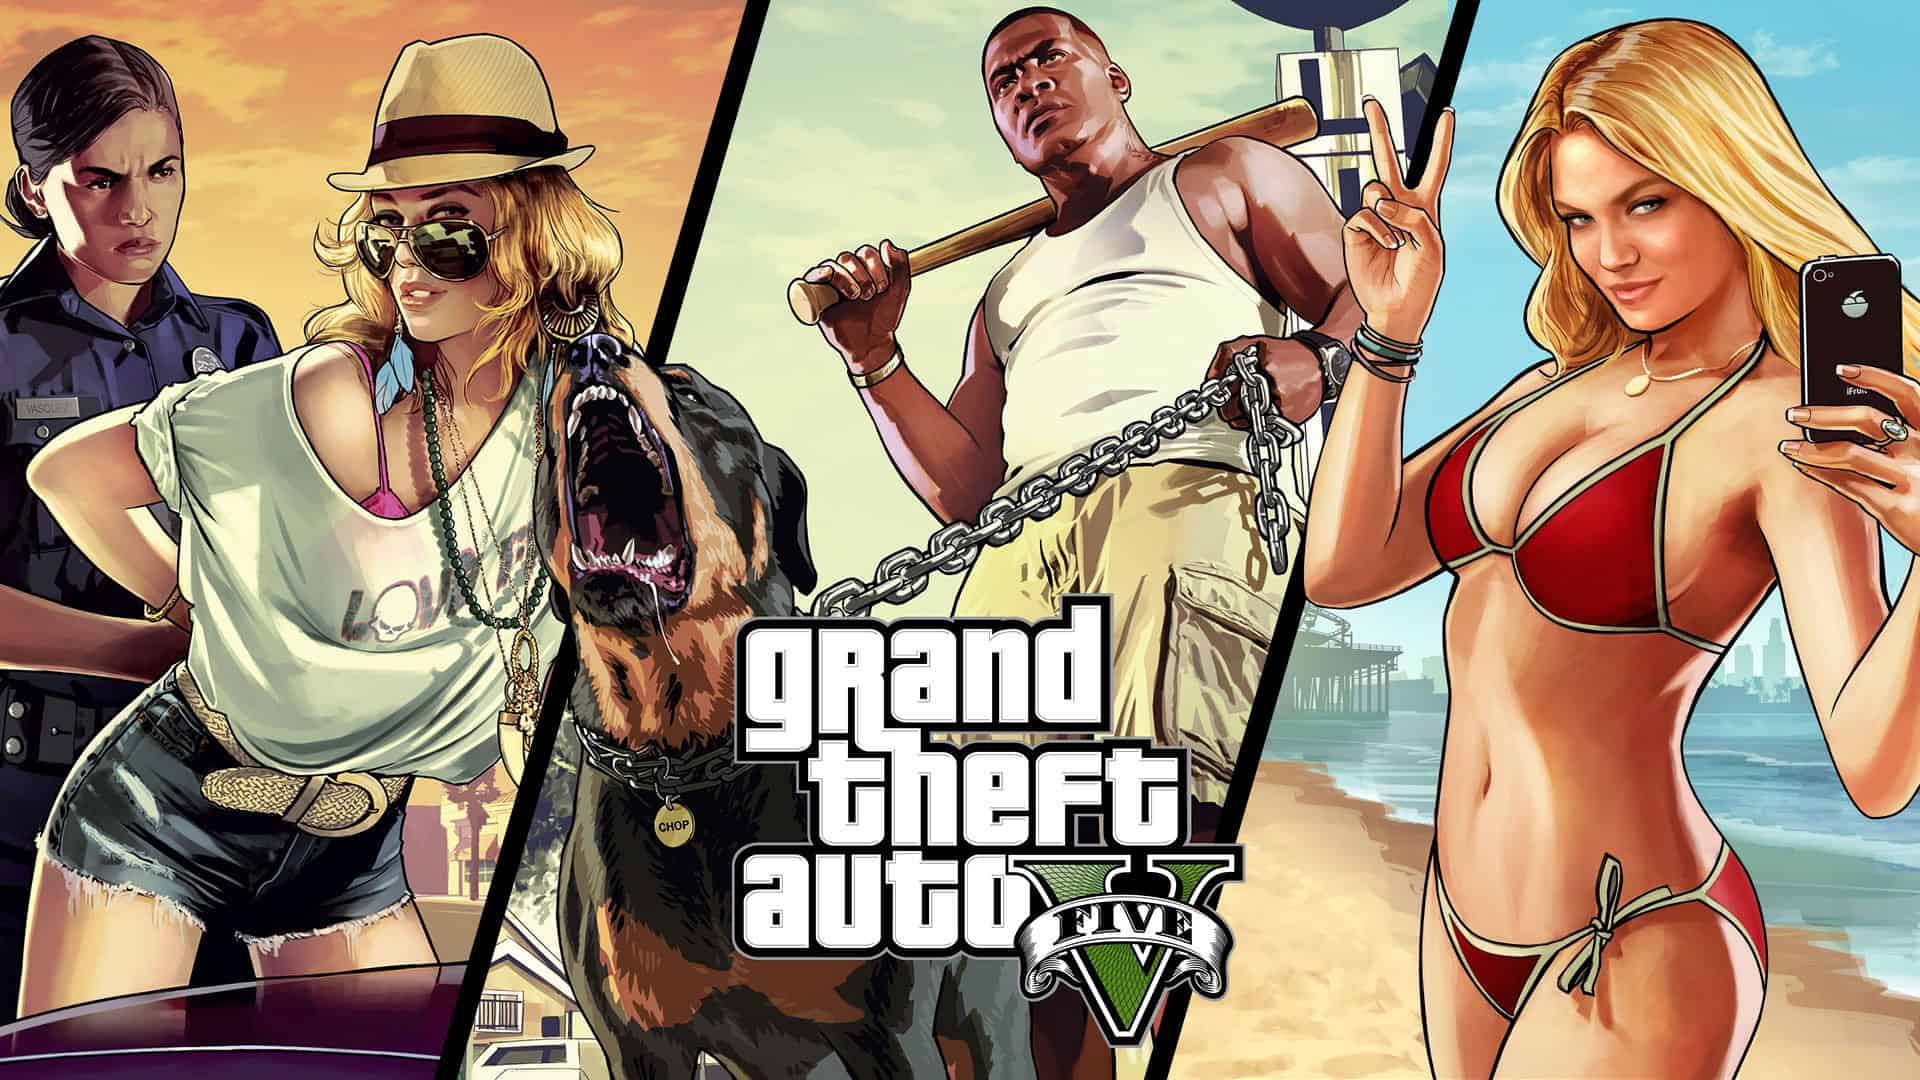 GTA_5_WALLPAPER